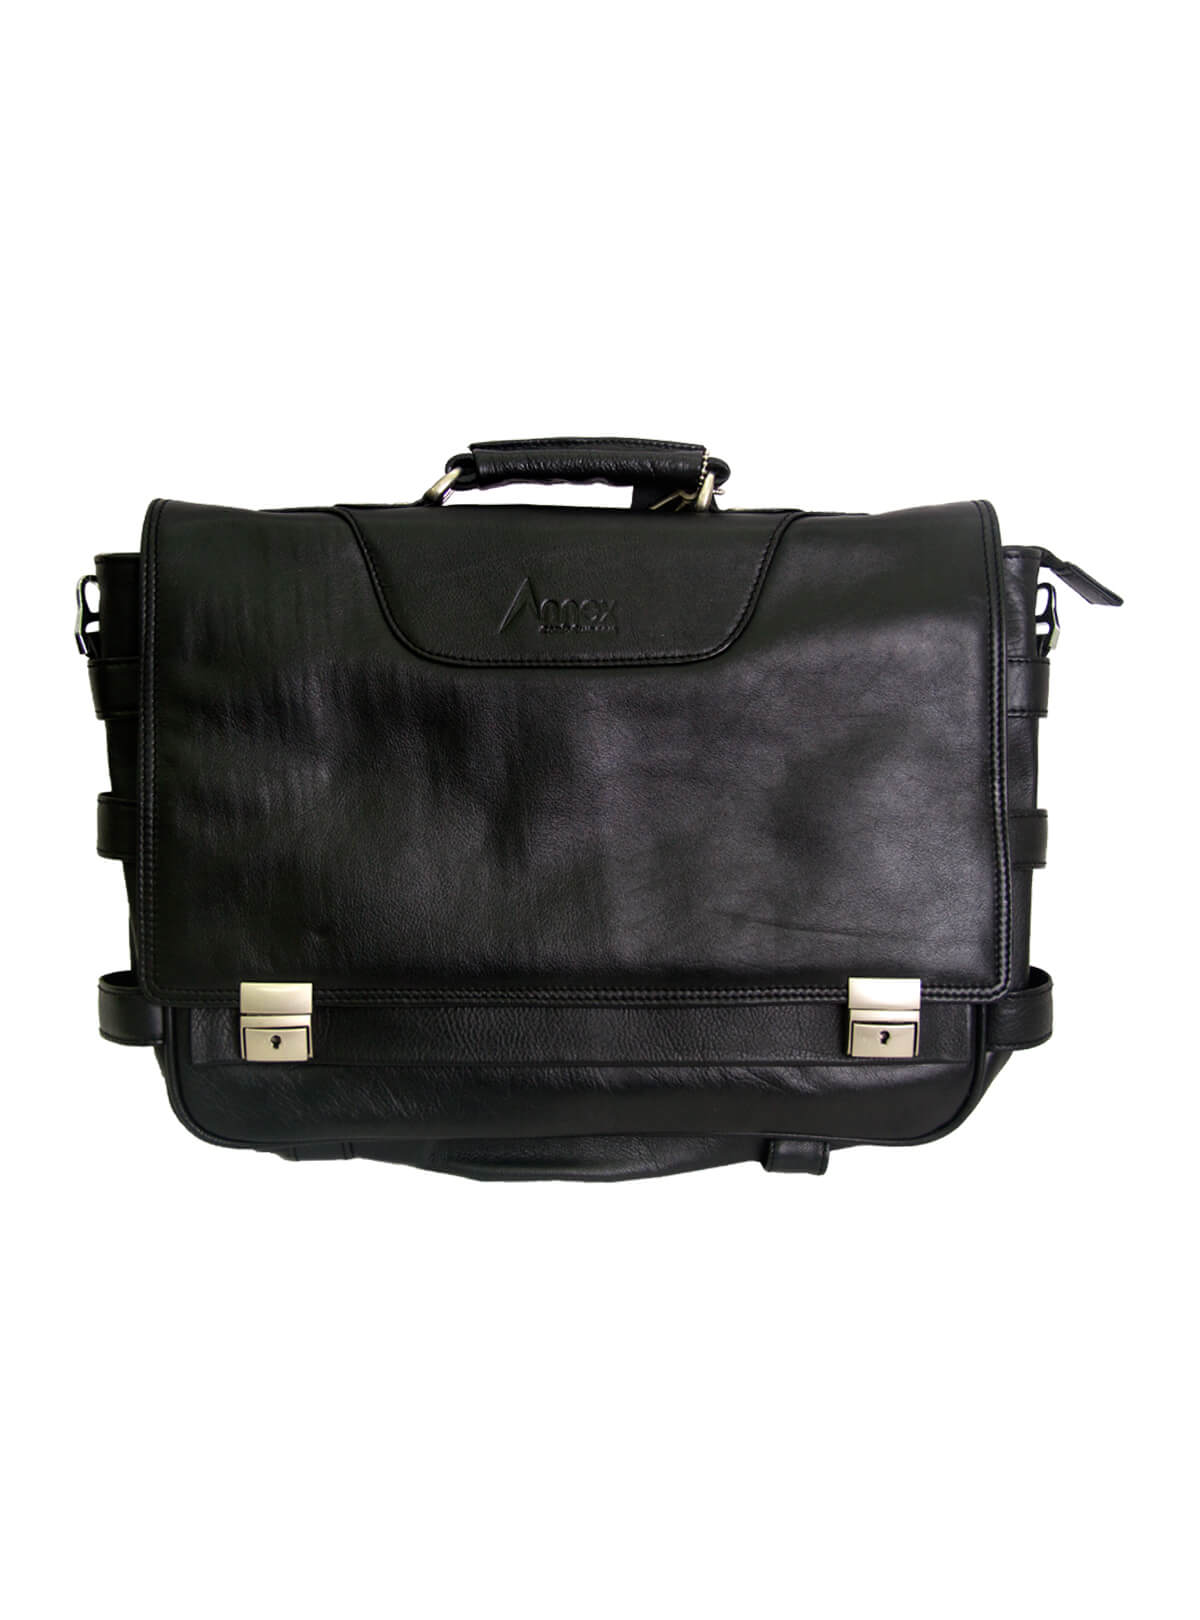 Black Smart Leather Laptop Bag